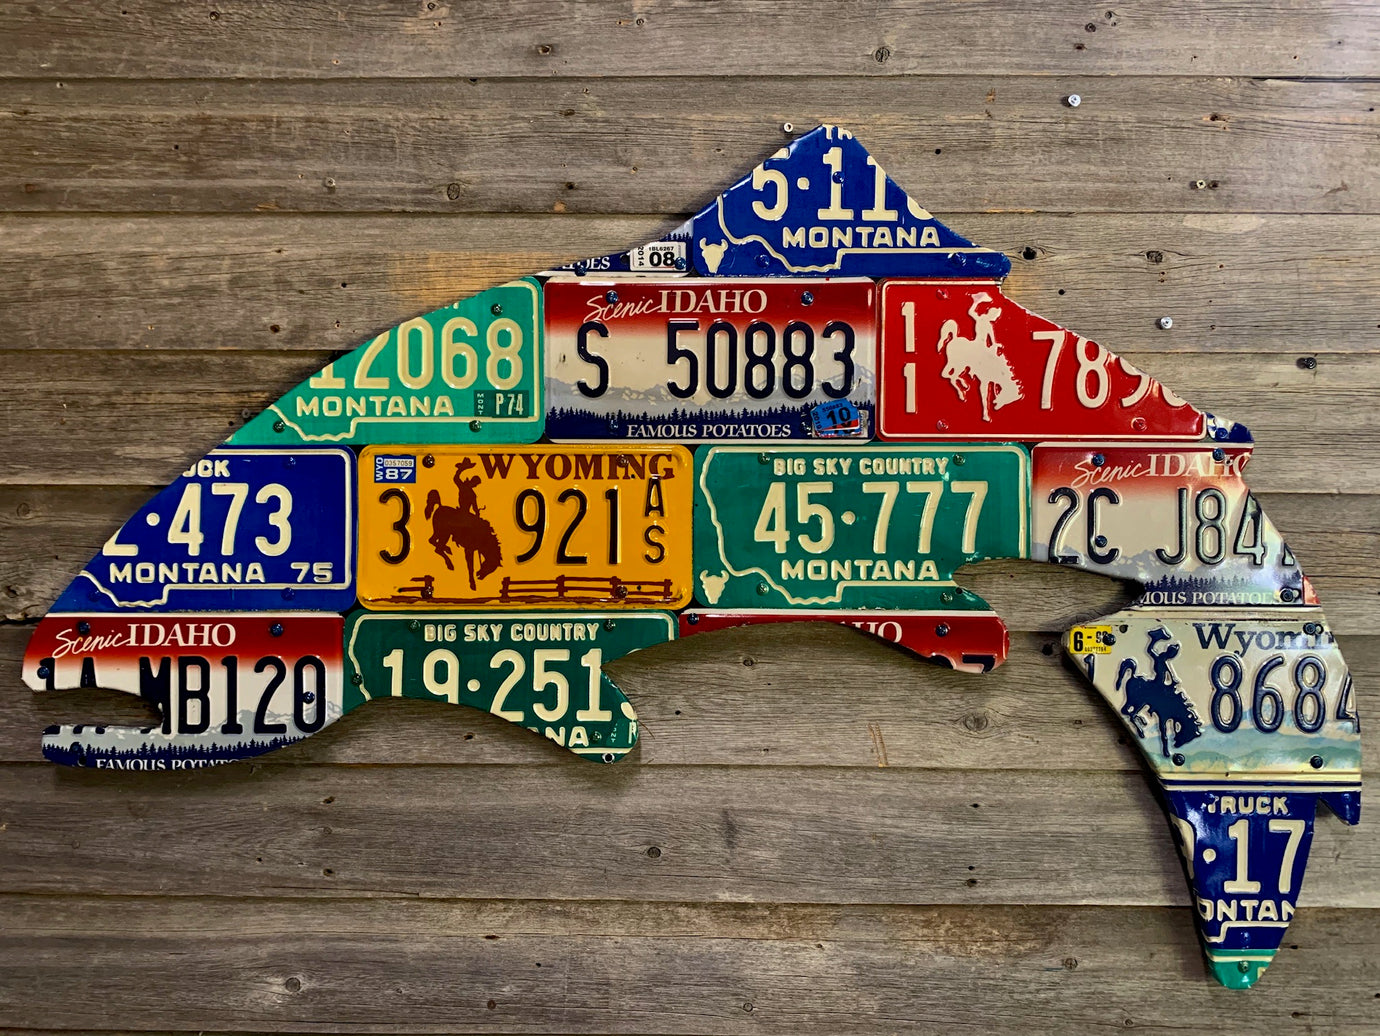 Large 4-Foot Mixed Western Trout License Plate Art